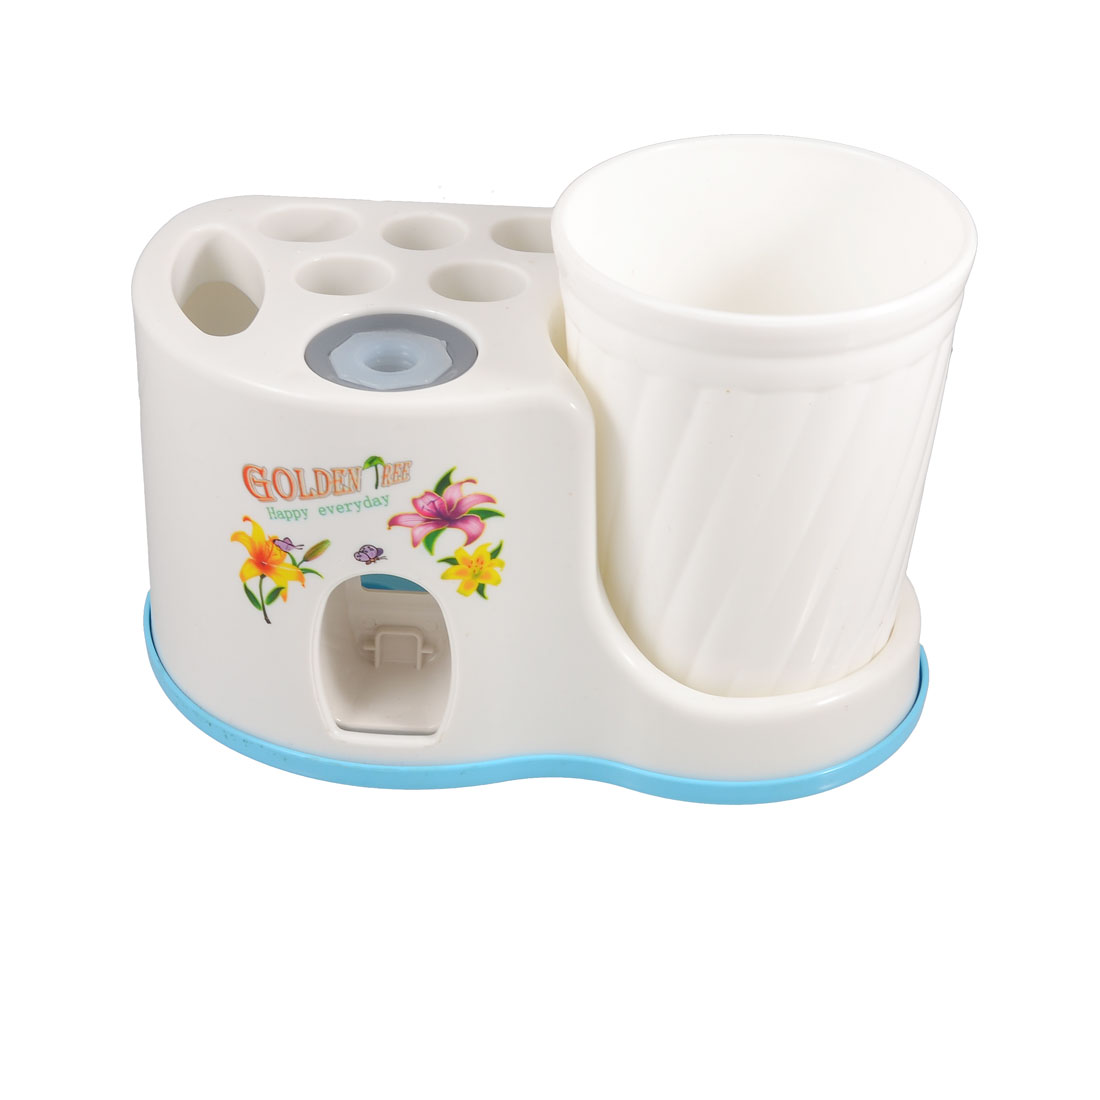 Home Plastic Wall Mounted Toothbrush Toothpaste Holder Case w Cup